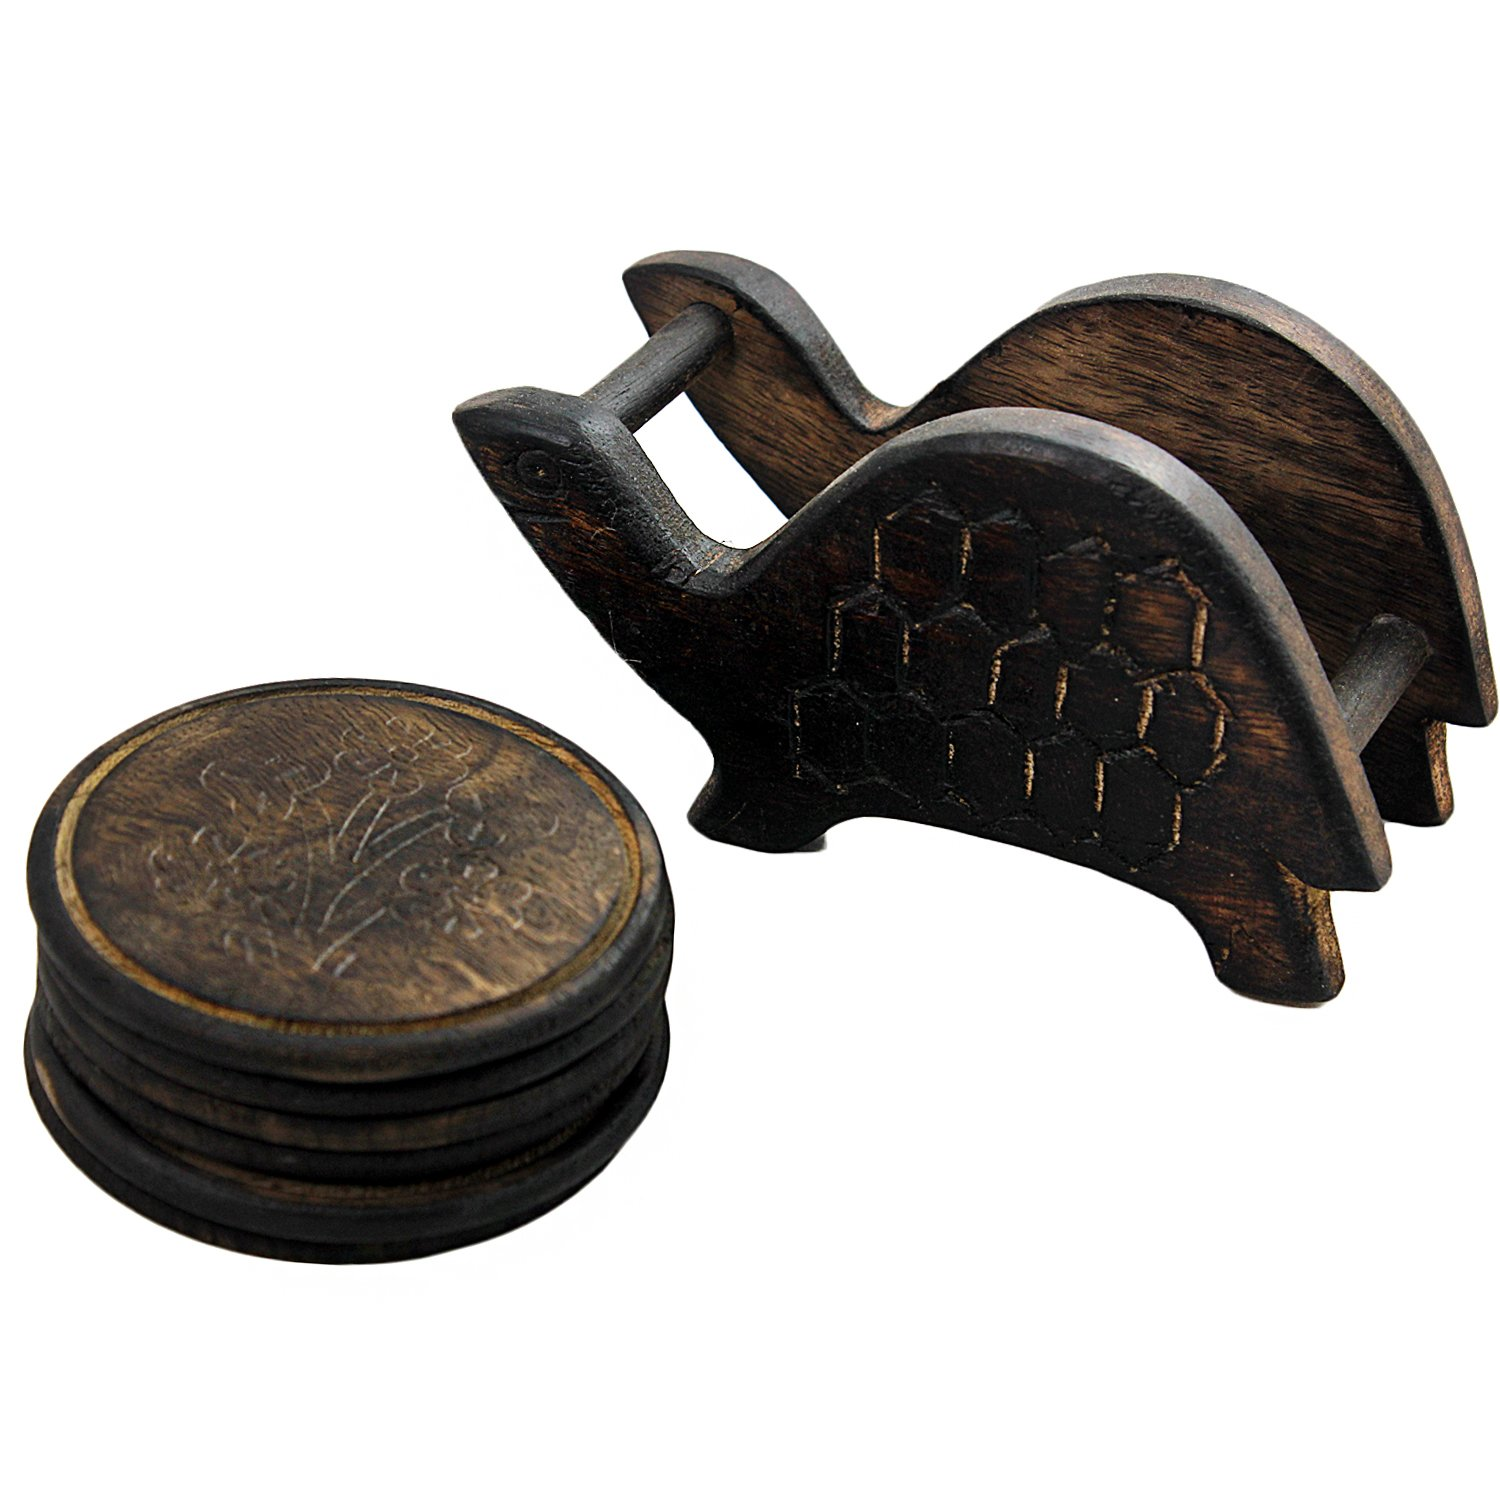 Gifts From India Turtle Shape Wooden Coasters Stand With Set of 6 pcs Coasters (Stand Size : 5.75''x2.5''x4'', Coaster Size : 3.25'' x 3.25'')